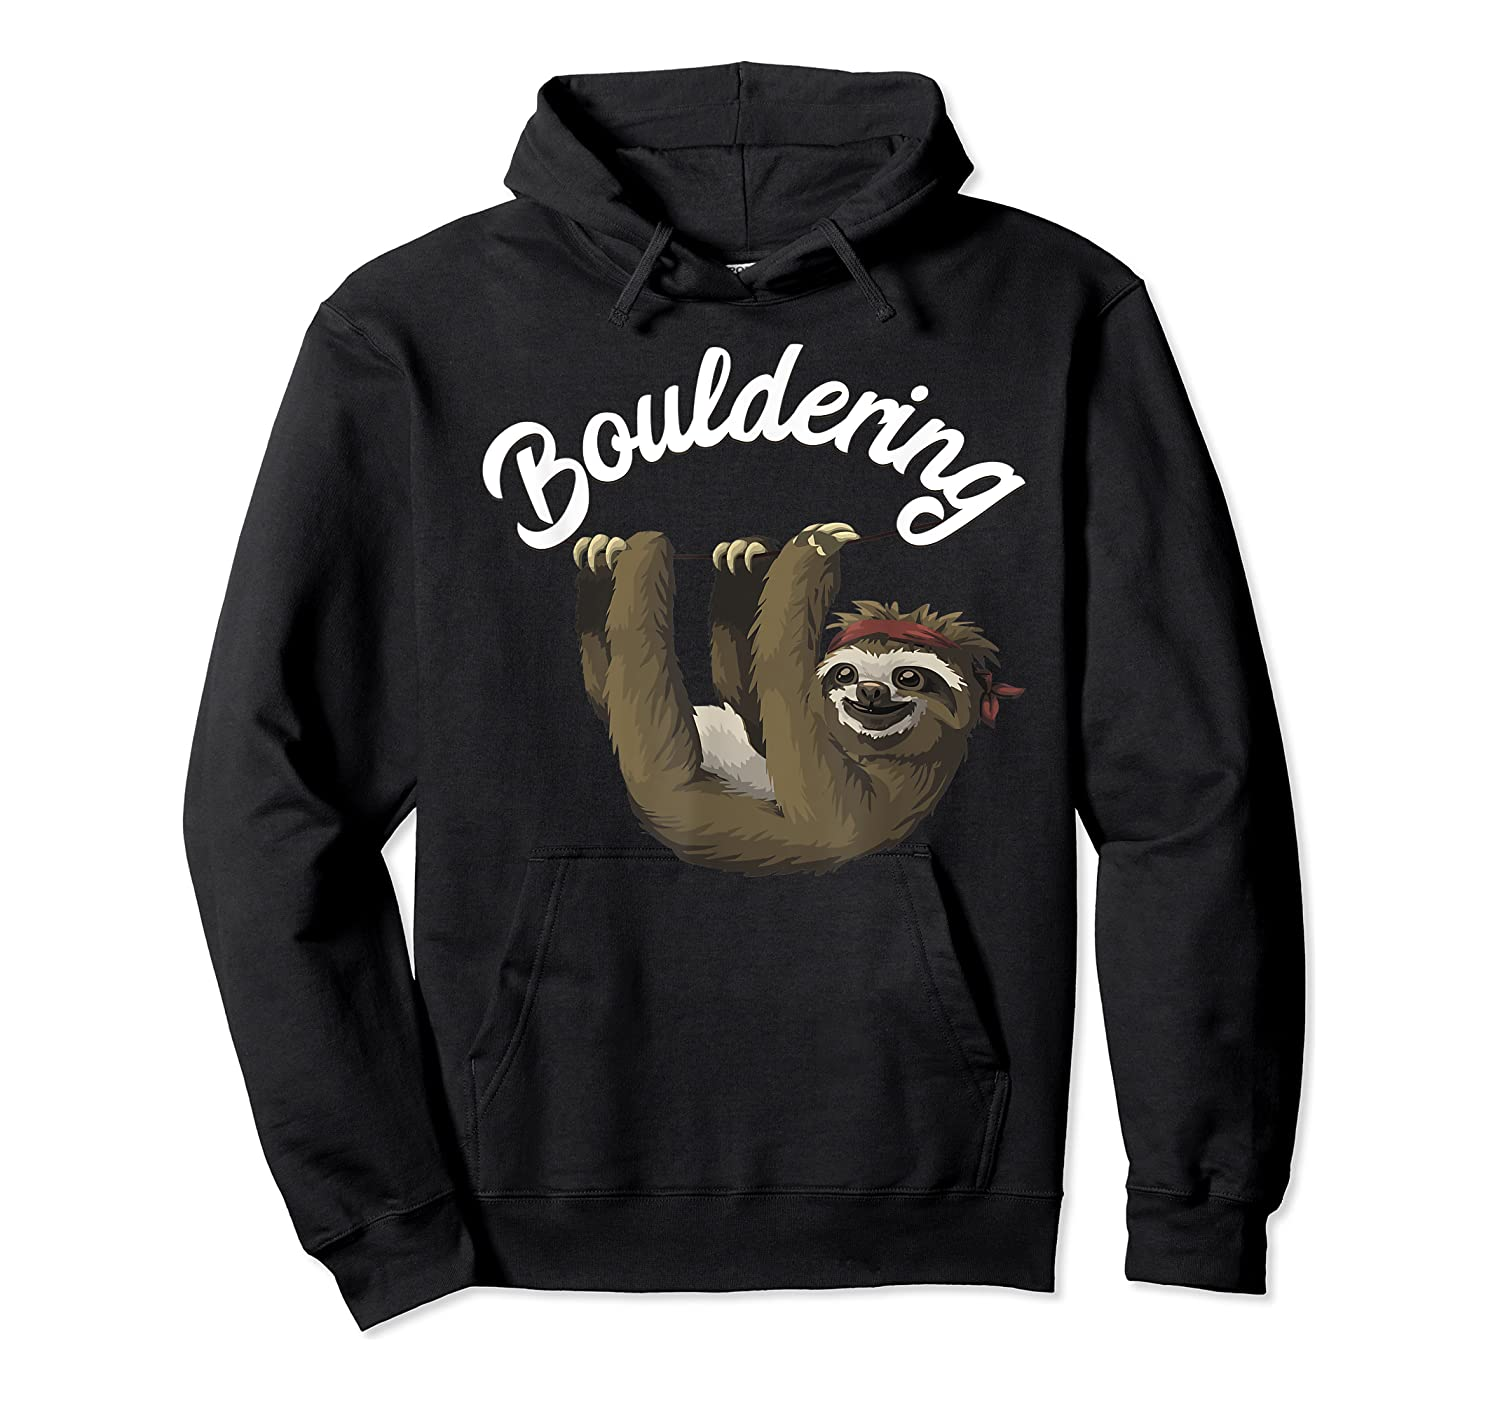 Funny Bouldering Sloth T Shirt Free Rock Climbing Animal Unisex Pullover Hoodie